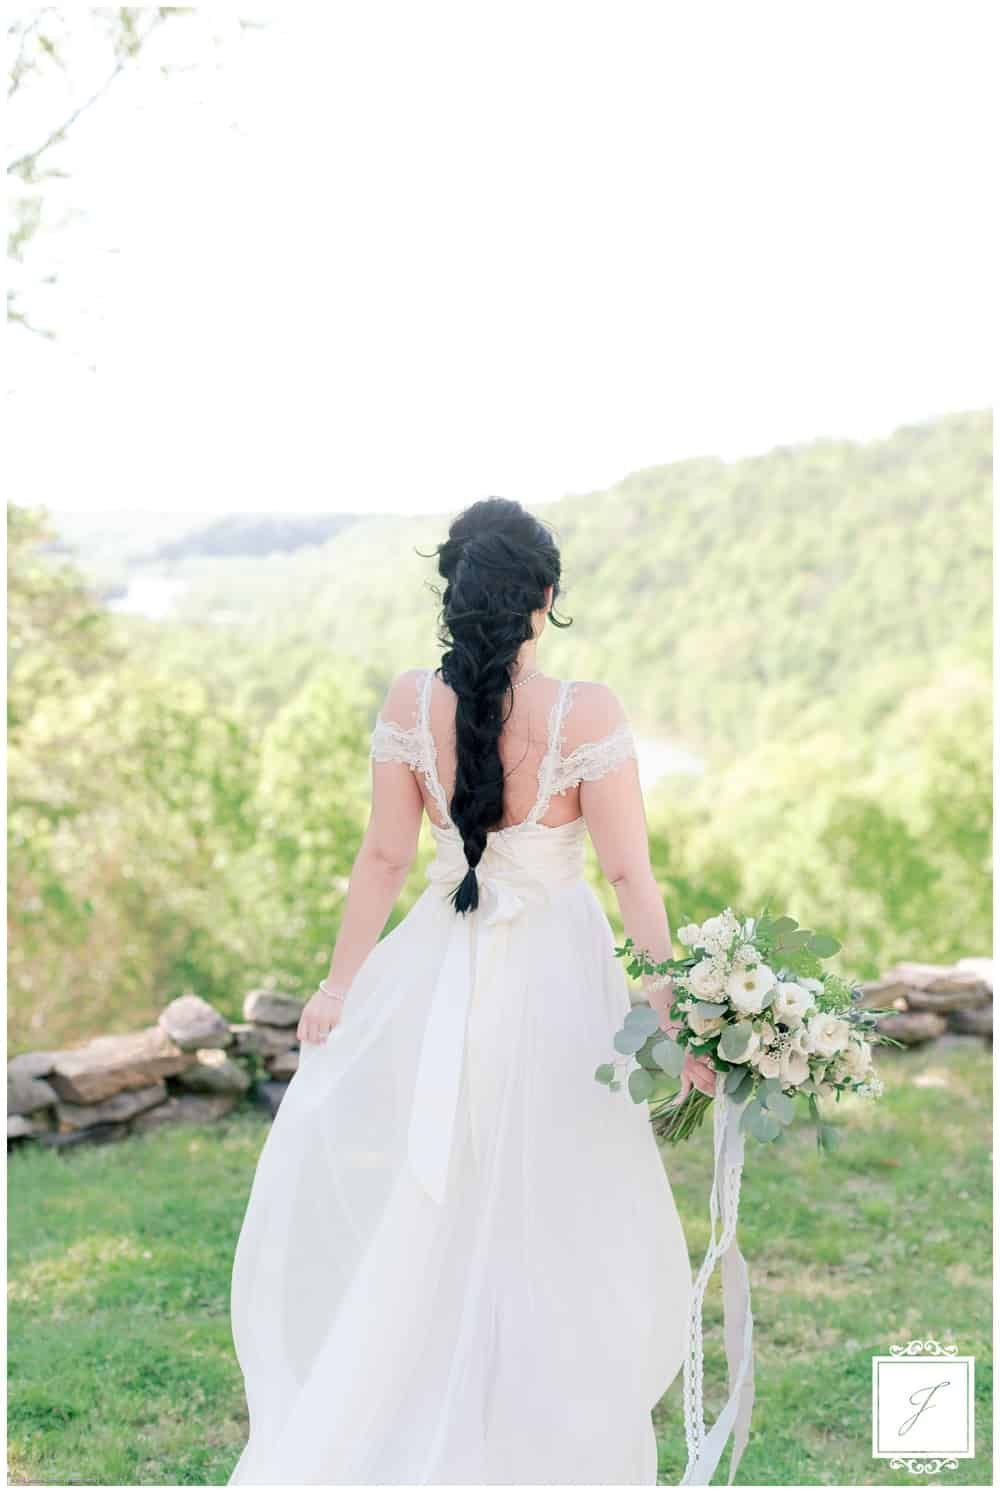 Pittsburgh wedding photographer, Wedding, Jackson Signature Photography, Destination Wedding, Joy Filled Occasions, Wedding Planning, Garden Party